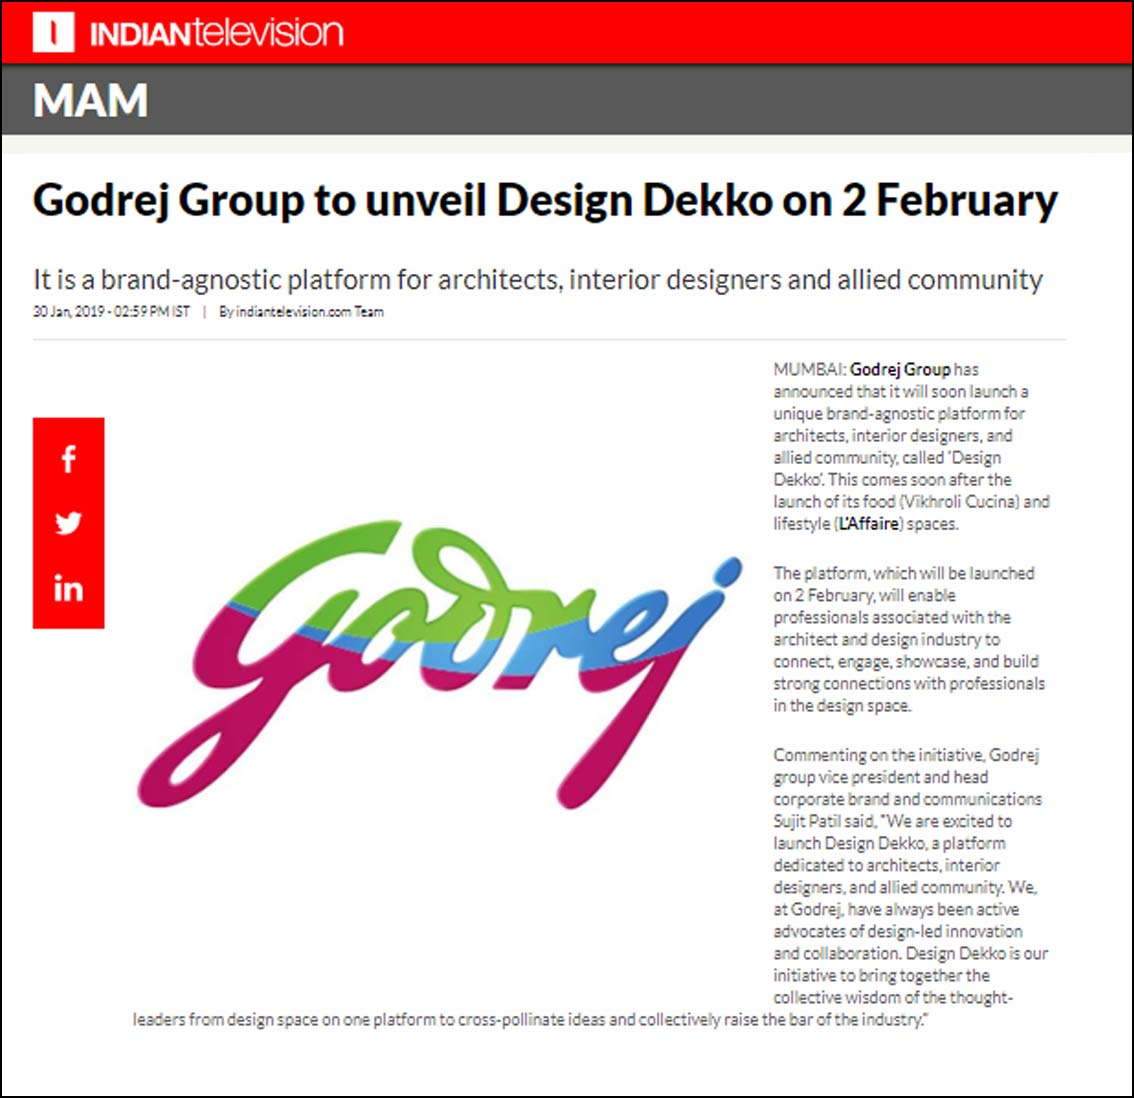 Godrej Group to Unveil Design Dekko on 2 February, Indian Television - January 2019